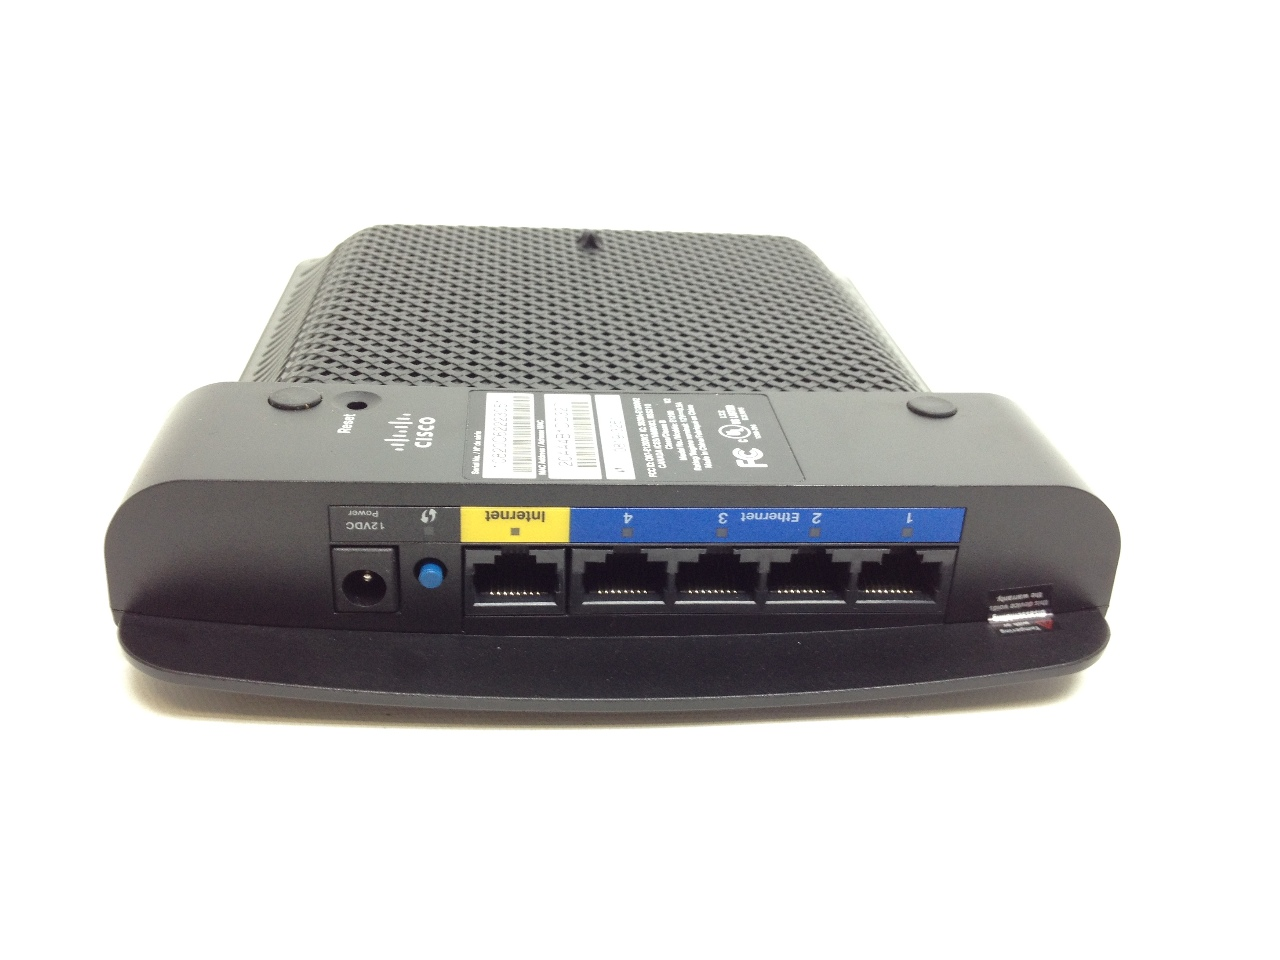 Linksys-E1200 N300 Wi-Fi Router